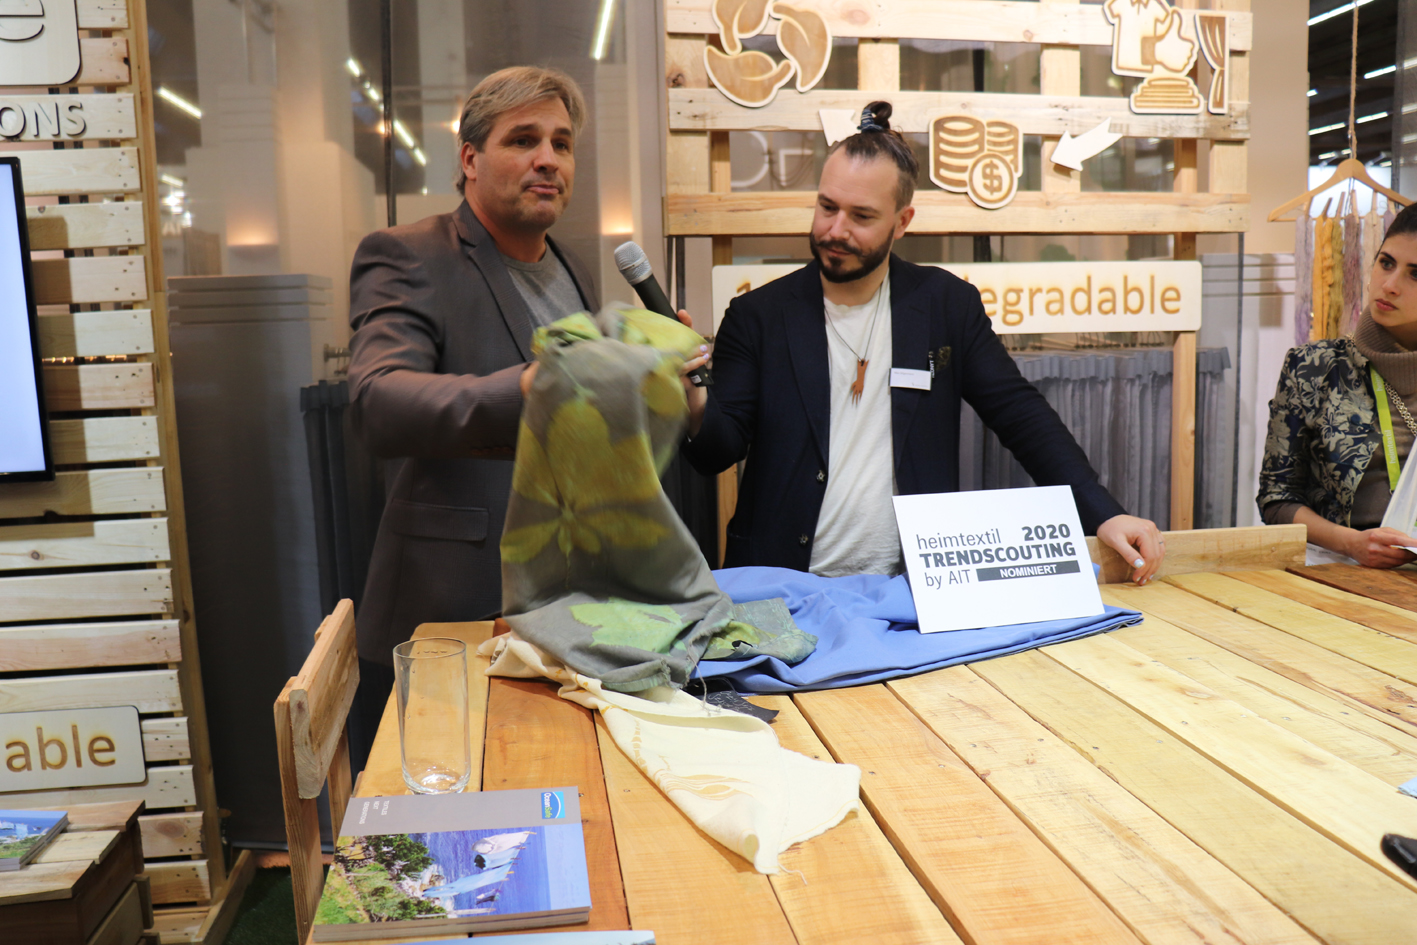 DDF managing director Manuel Schweizer explains the OceanSafe concept to Max Gilgenmann of Kaleidoscope. Image: Adrian Wilson